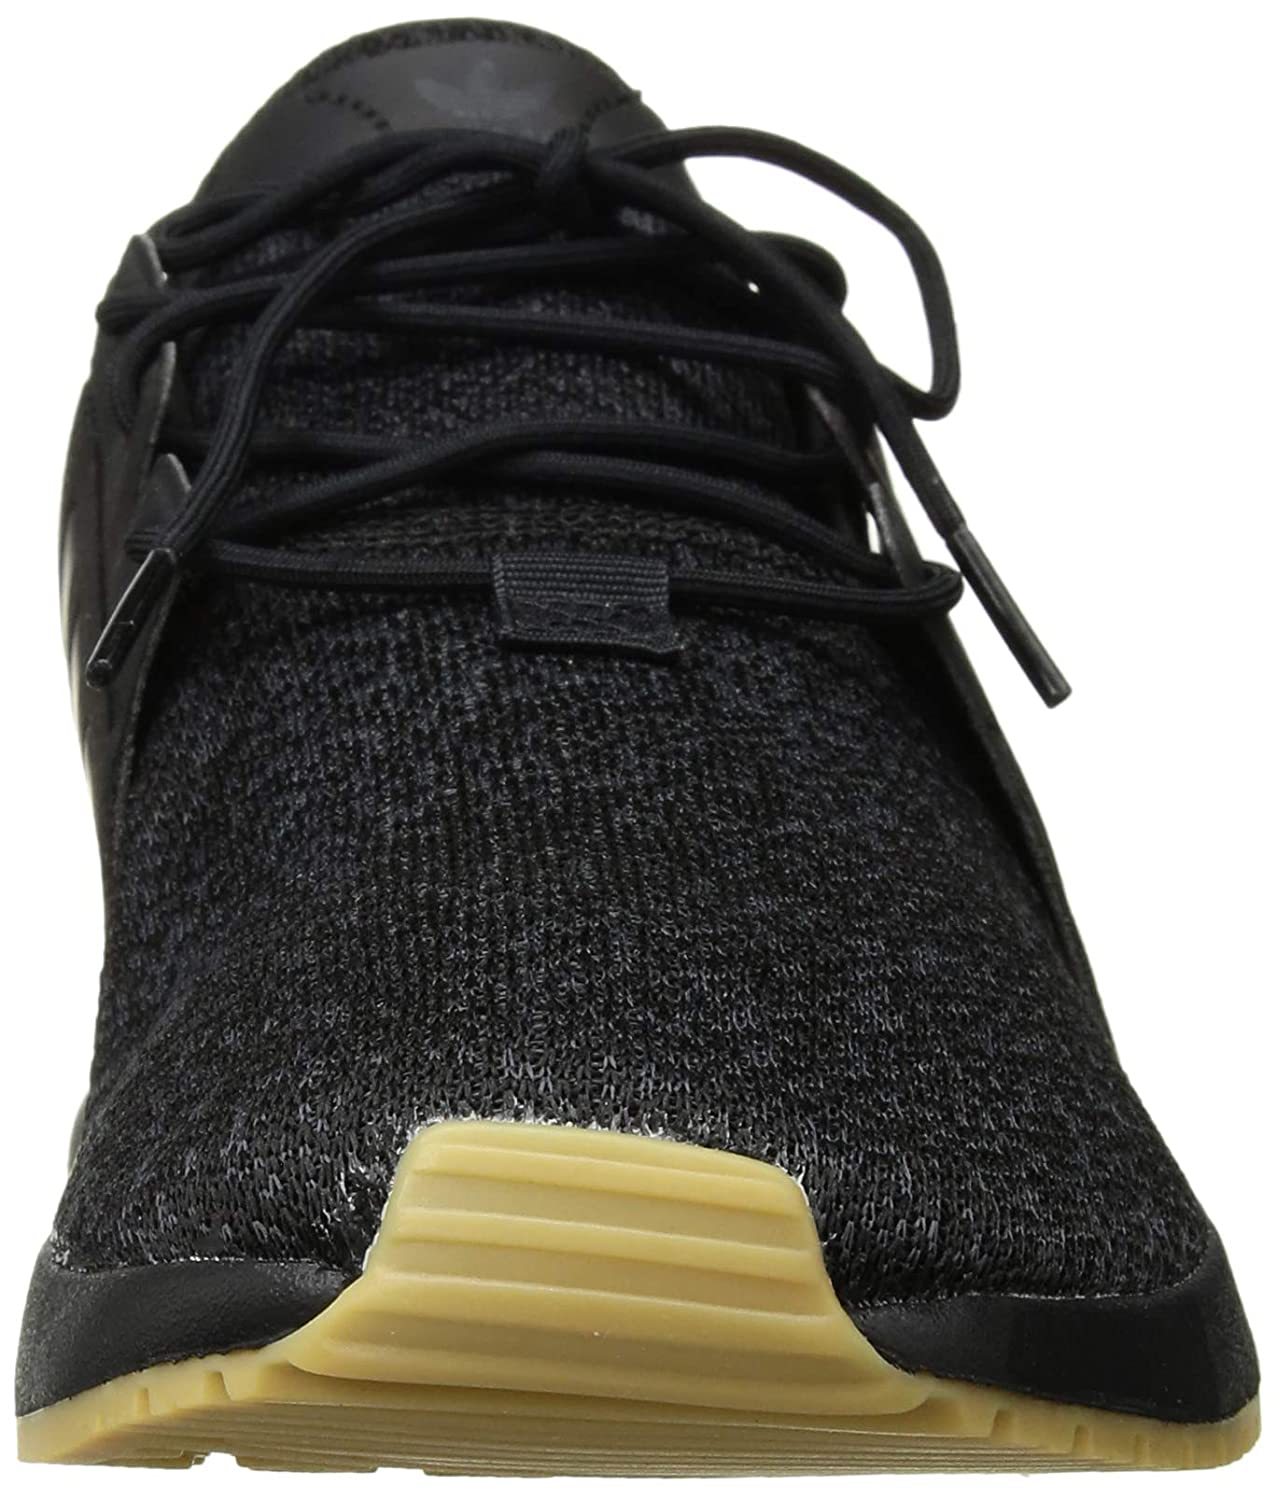 adidas Originals Men's X_PLR Sneakers, Lightweight, Comfortable and Stylish Speed with Speed Stylish Lacing System for Quick On-Off Wear B077X8G514 Running 44d3de